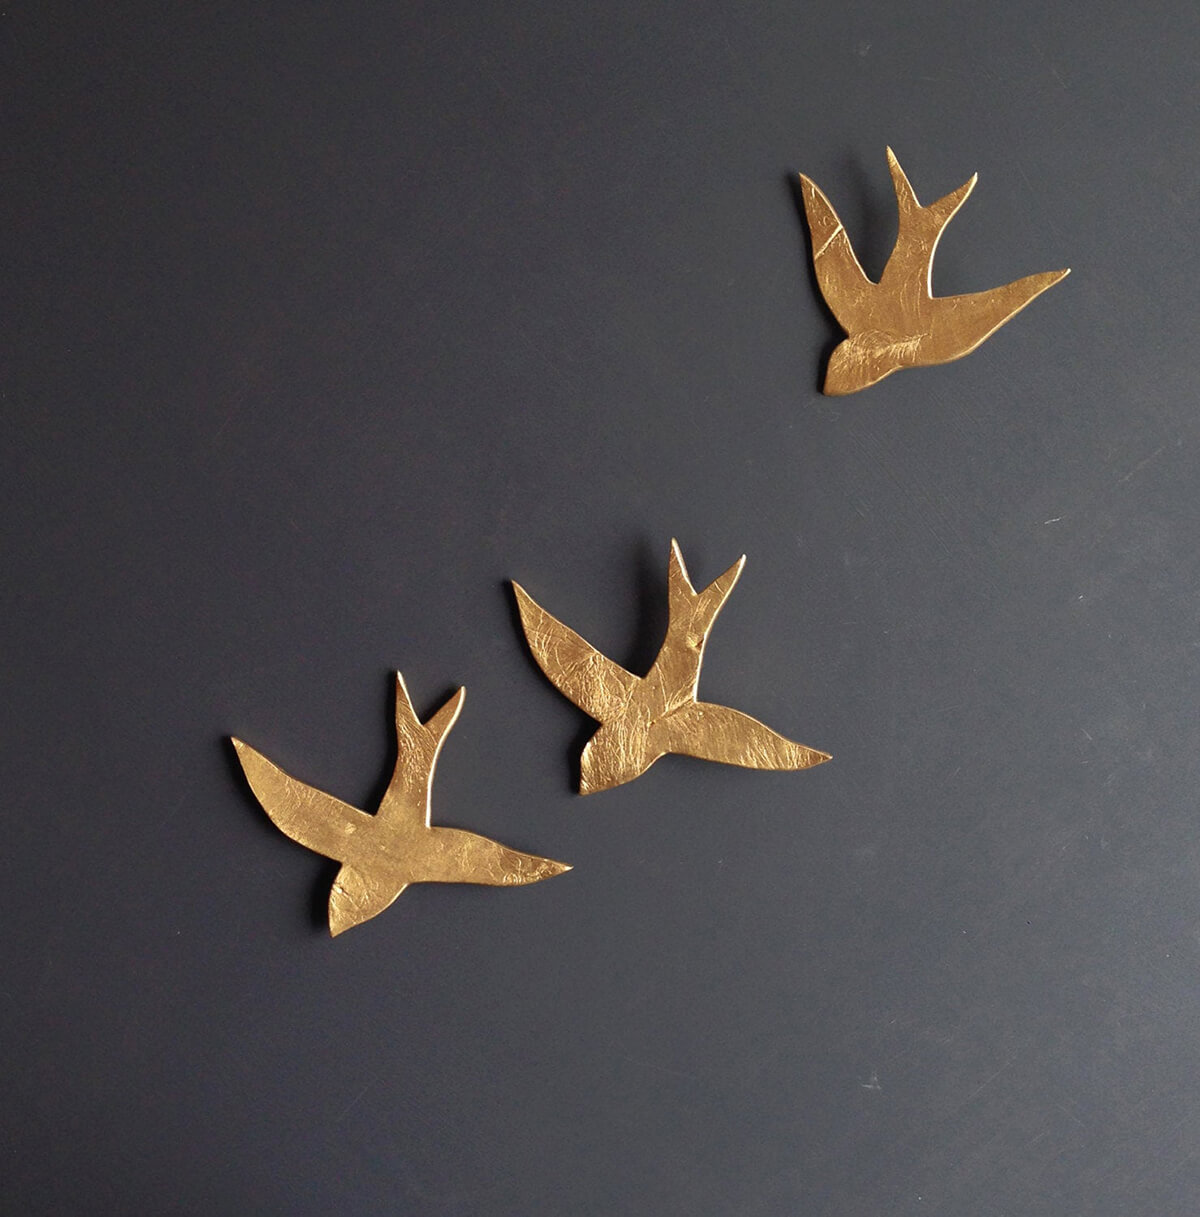 Metallic Ceramic Sculpture of Swallows